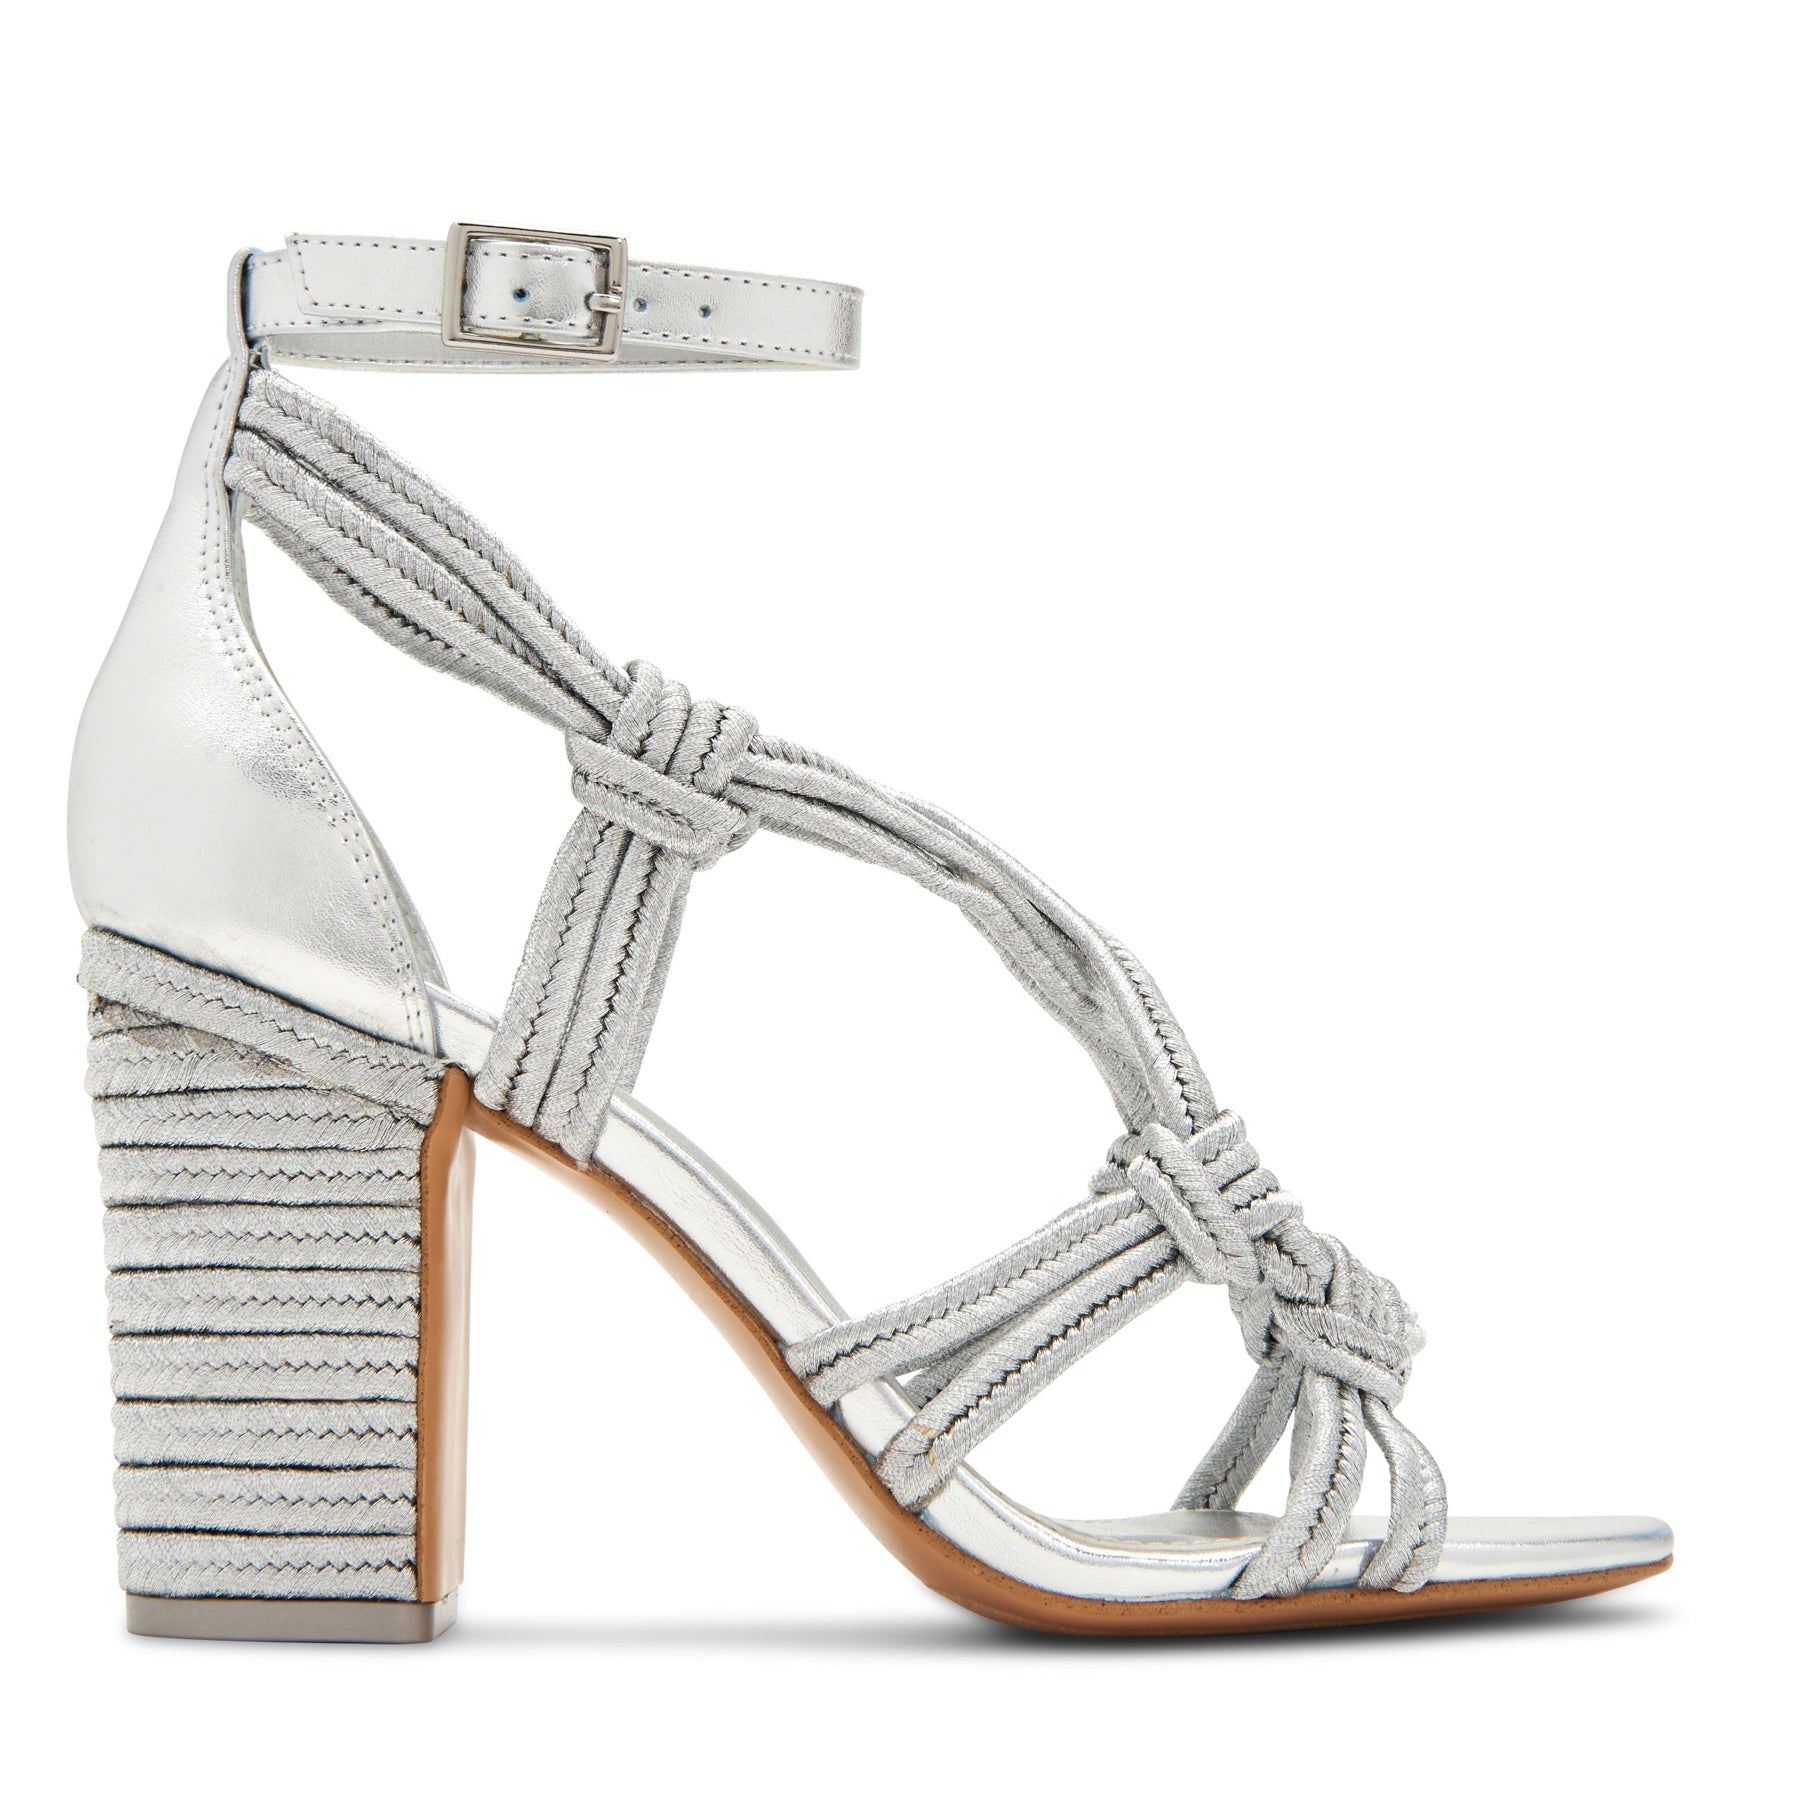 katy perry heeled sandal metallic in silver size 5.5 | the roped